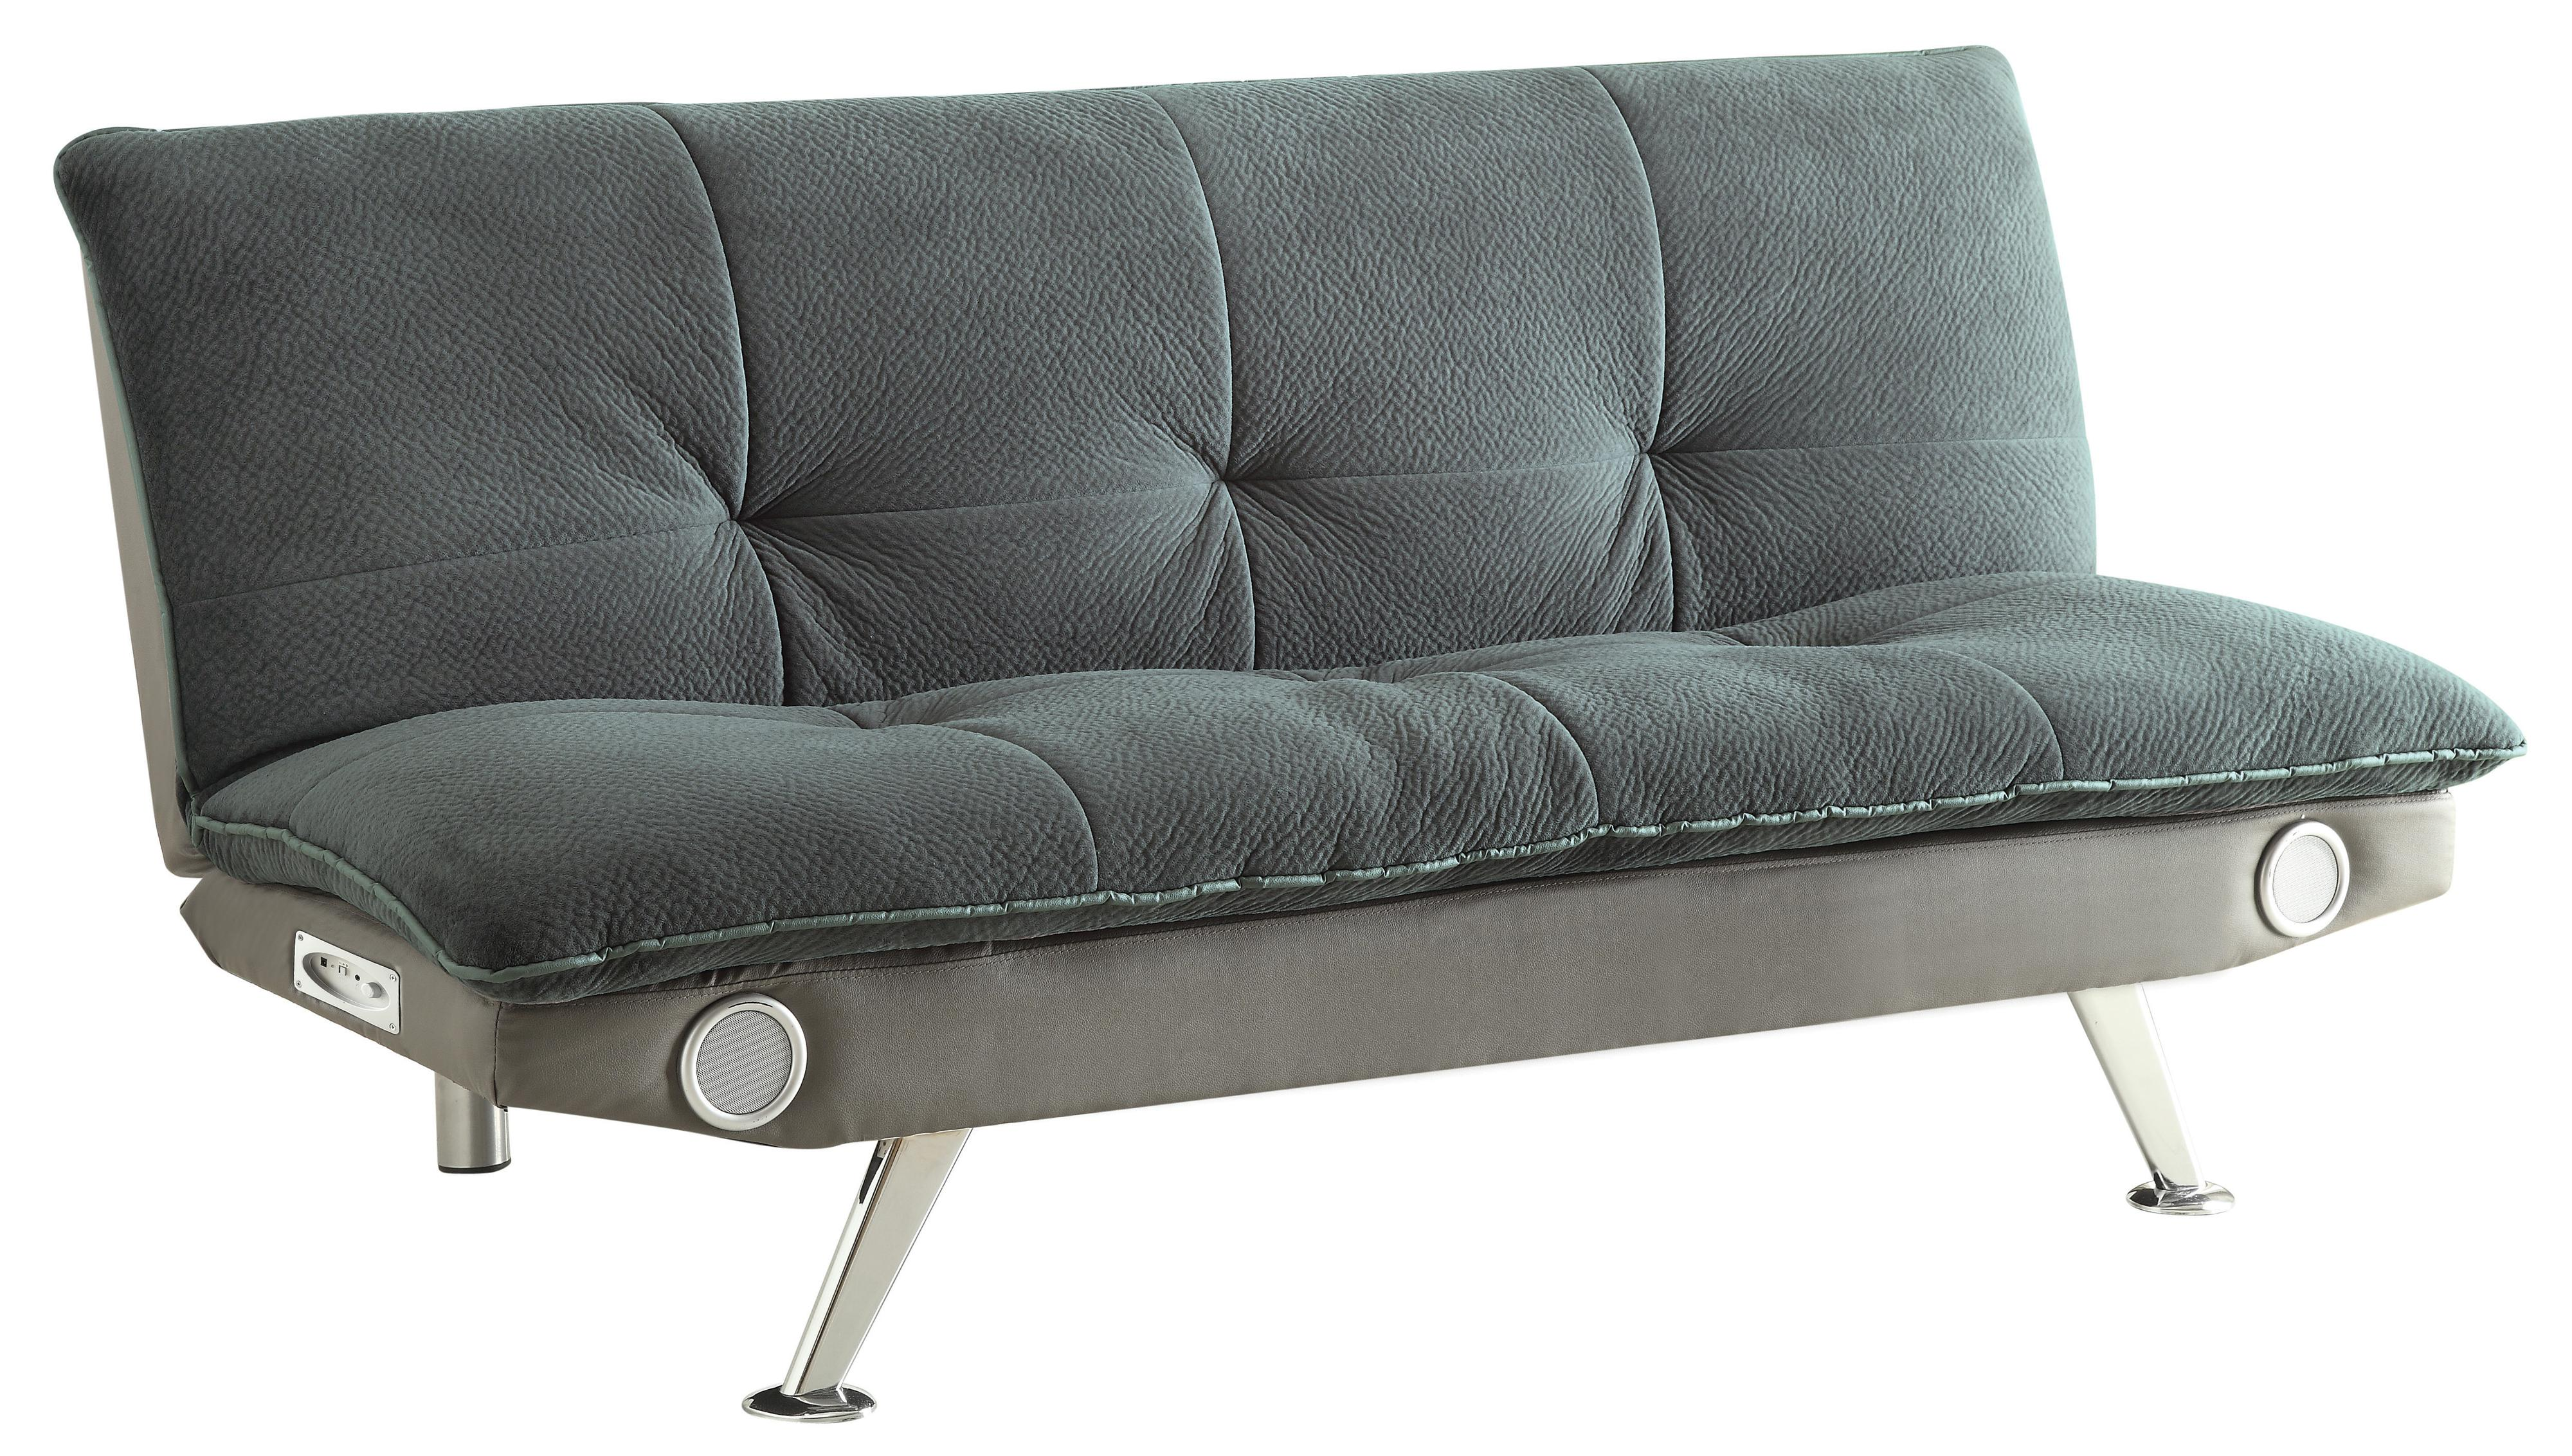 Coaster Sofa Beds And Futons Sofa Bed With Built In Bluetooth Speakers    Item Number